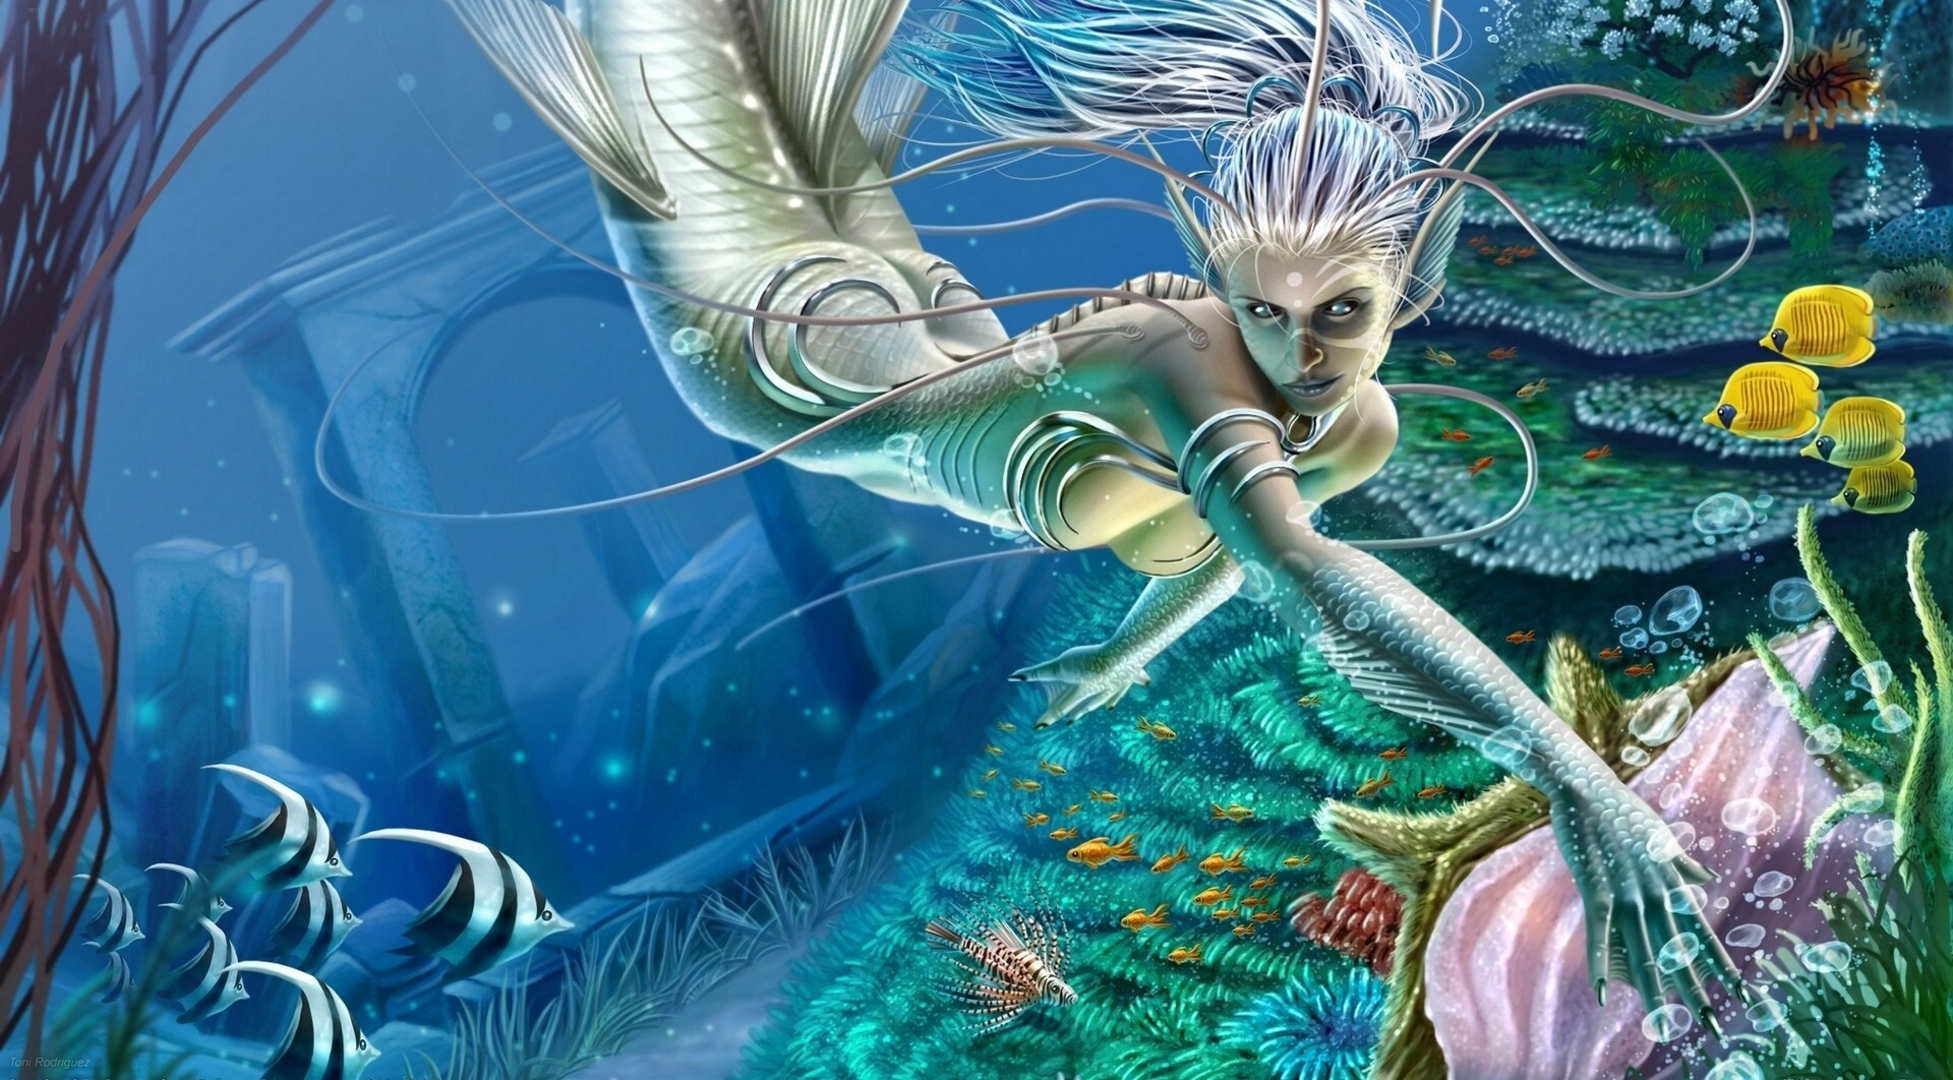 Mermaid Underwater world Fish Fantasy wallpaper backgroundUnderwater World Wallpapers